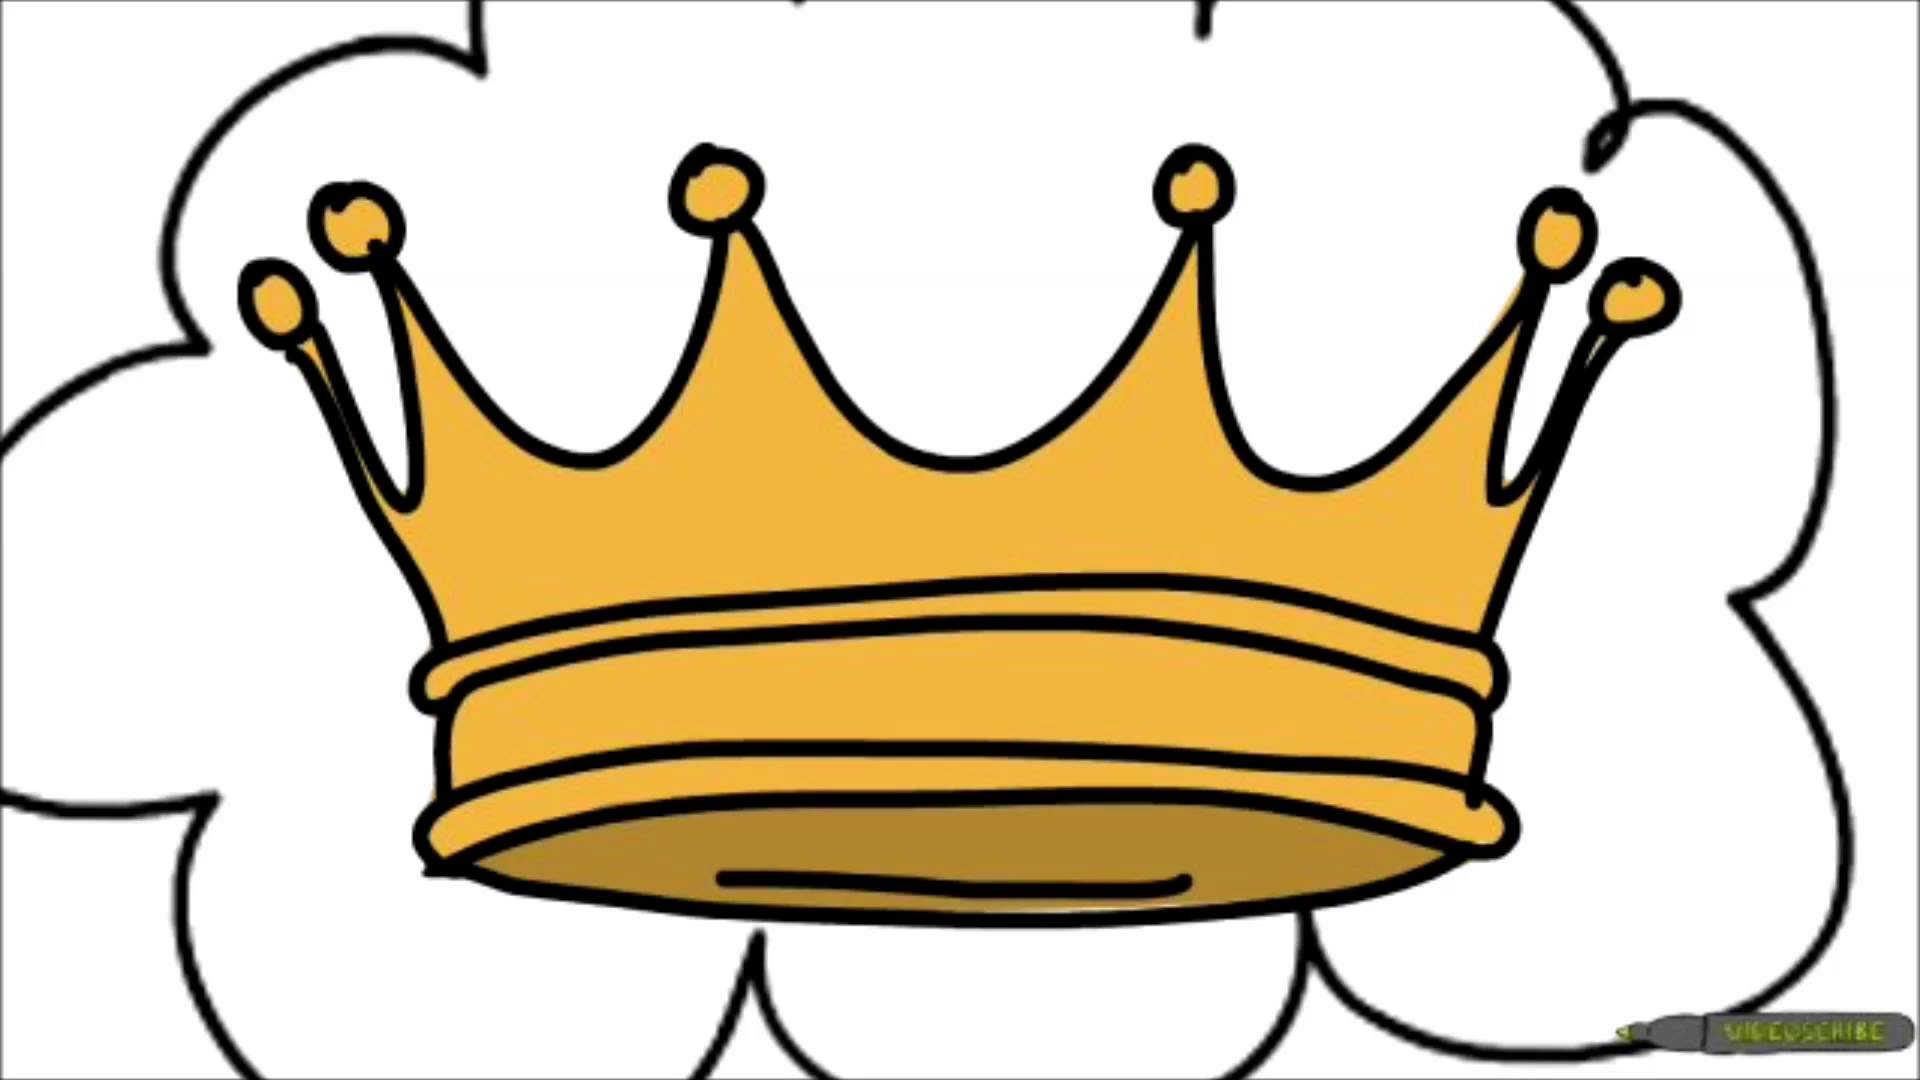 king crown drawing at getdrawings com free for personal use king rh getdrawings com free clipart crowns for princess free clipart crowns kings